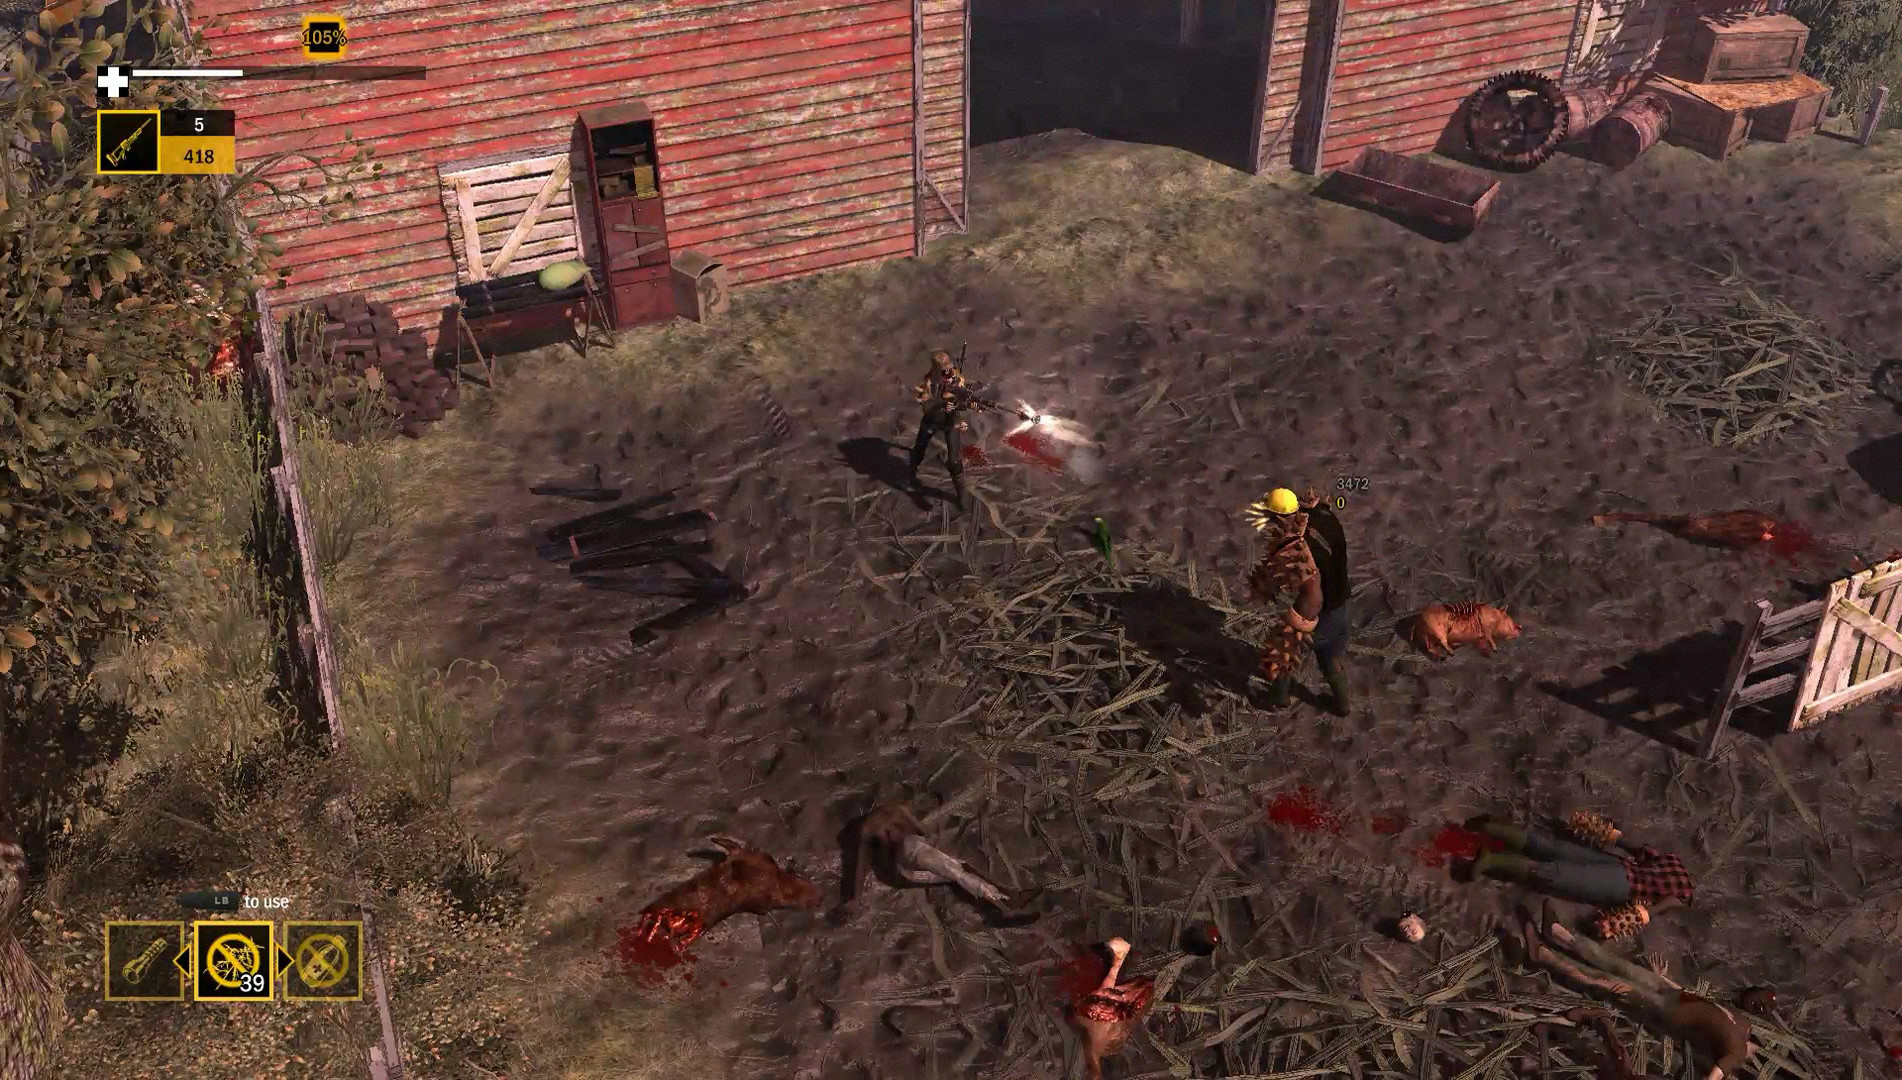 How To Survive 2 - Dead Dynamite Screenshot 1